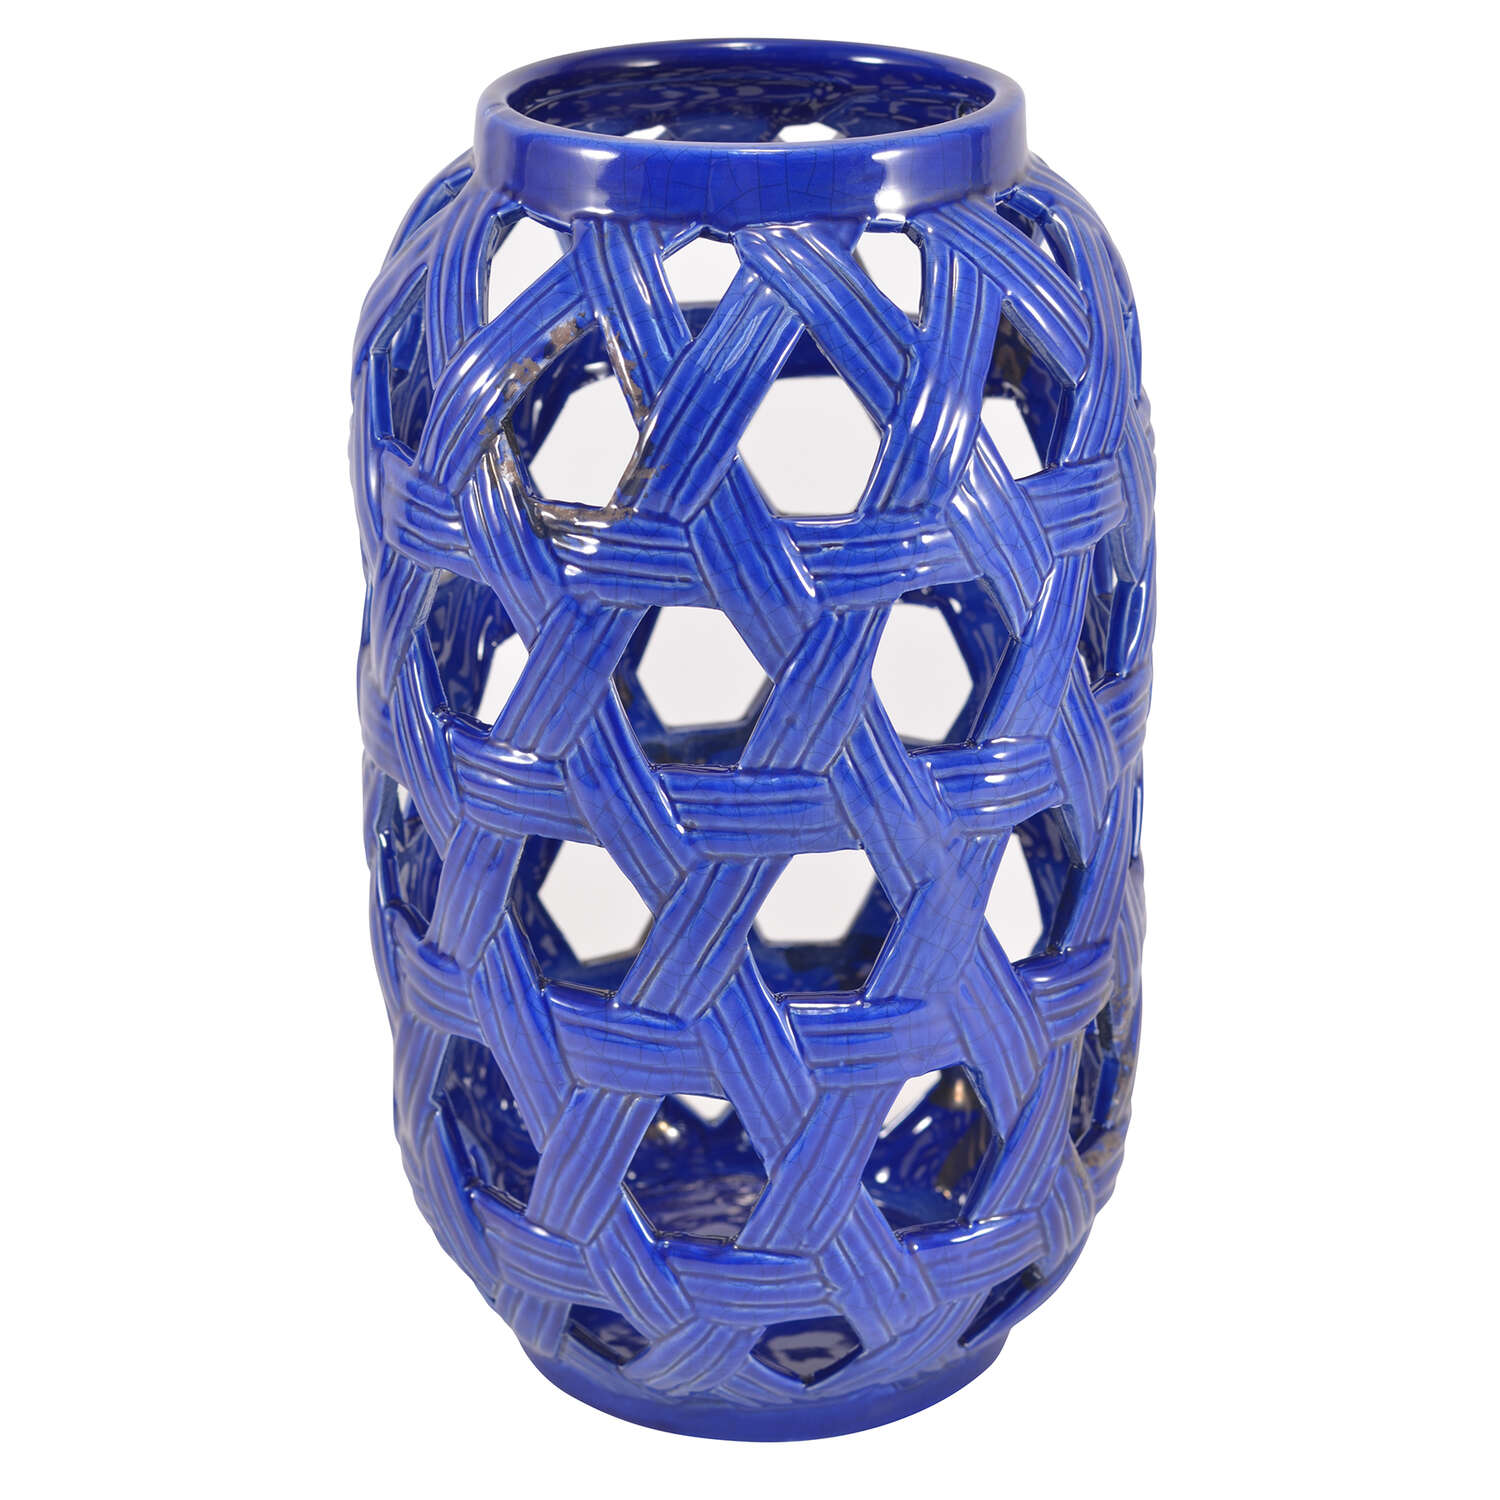 Mark Feldstein  11.36 in. H Ceramic Lantern Candle Holder  Cobalt Blue/White